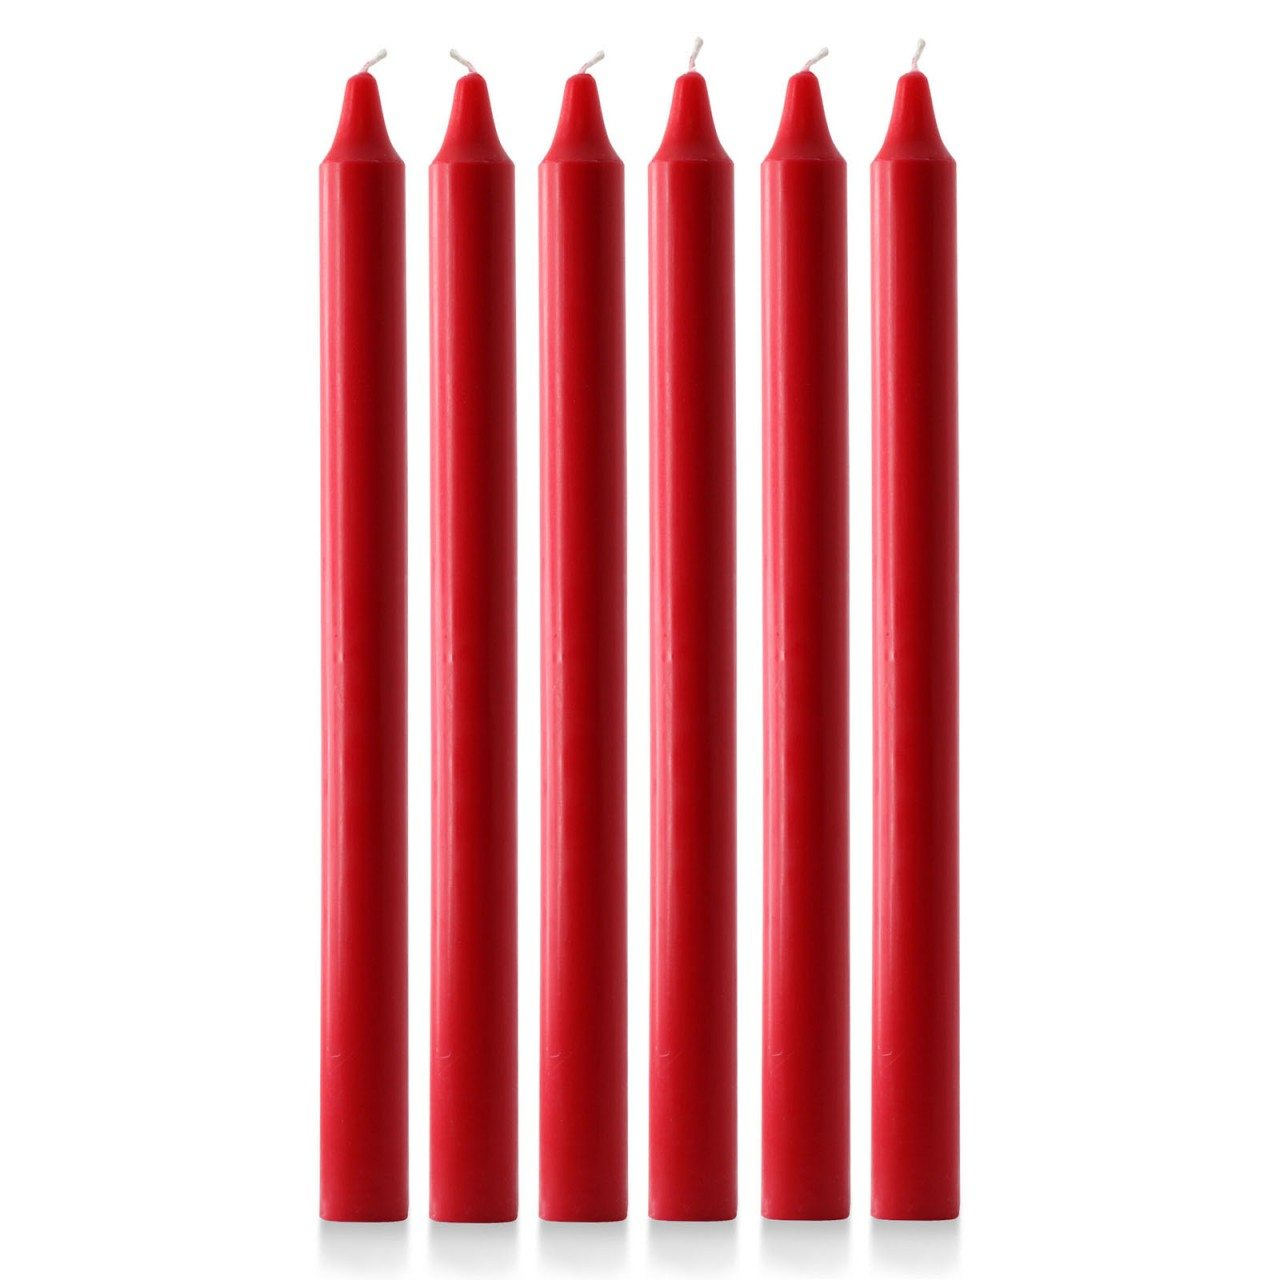 15 x 1 1 8 advent candles 6 red grace church supplies. Black Bedroom Furniture Sets. Home Design Ideas